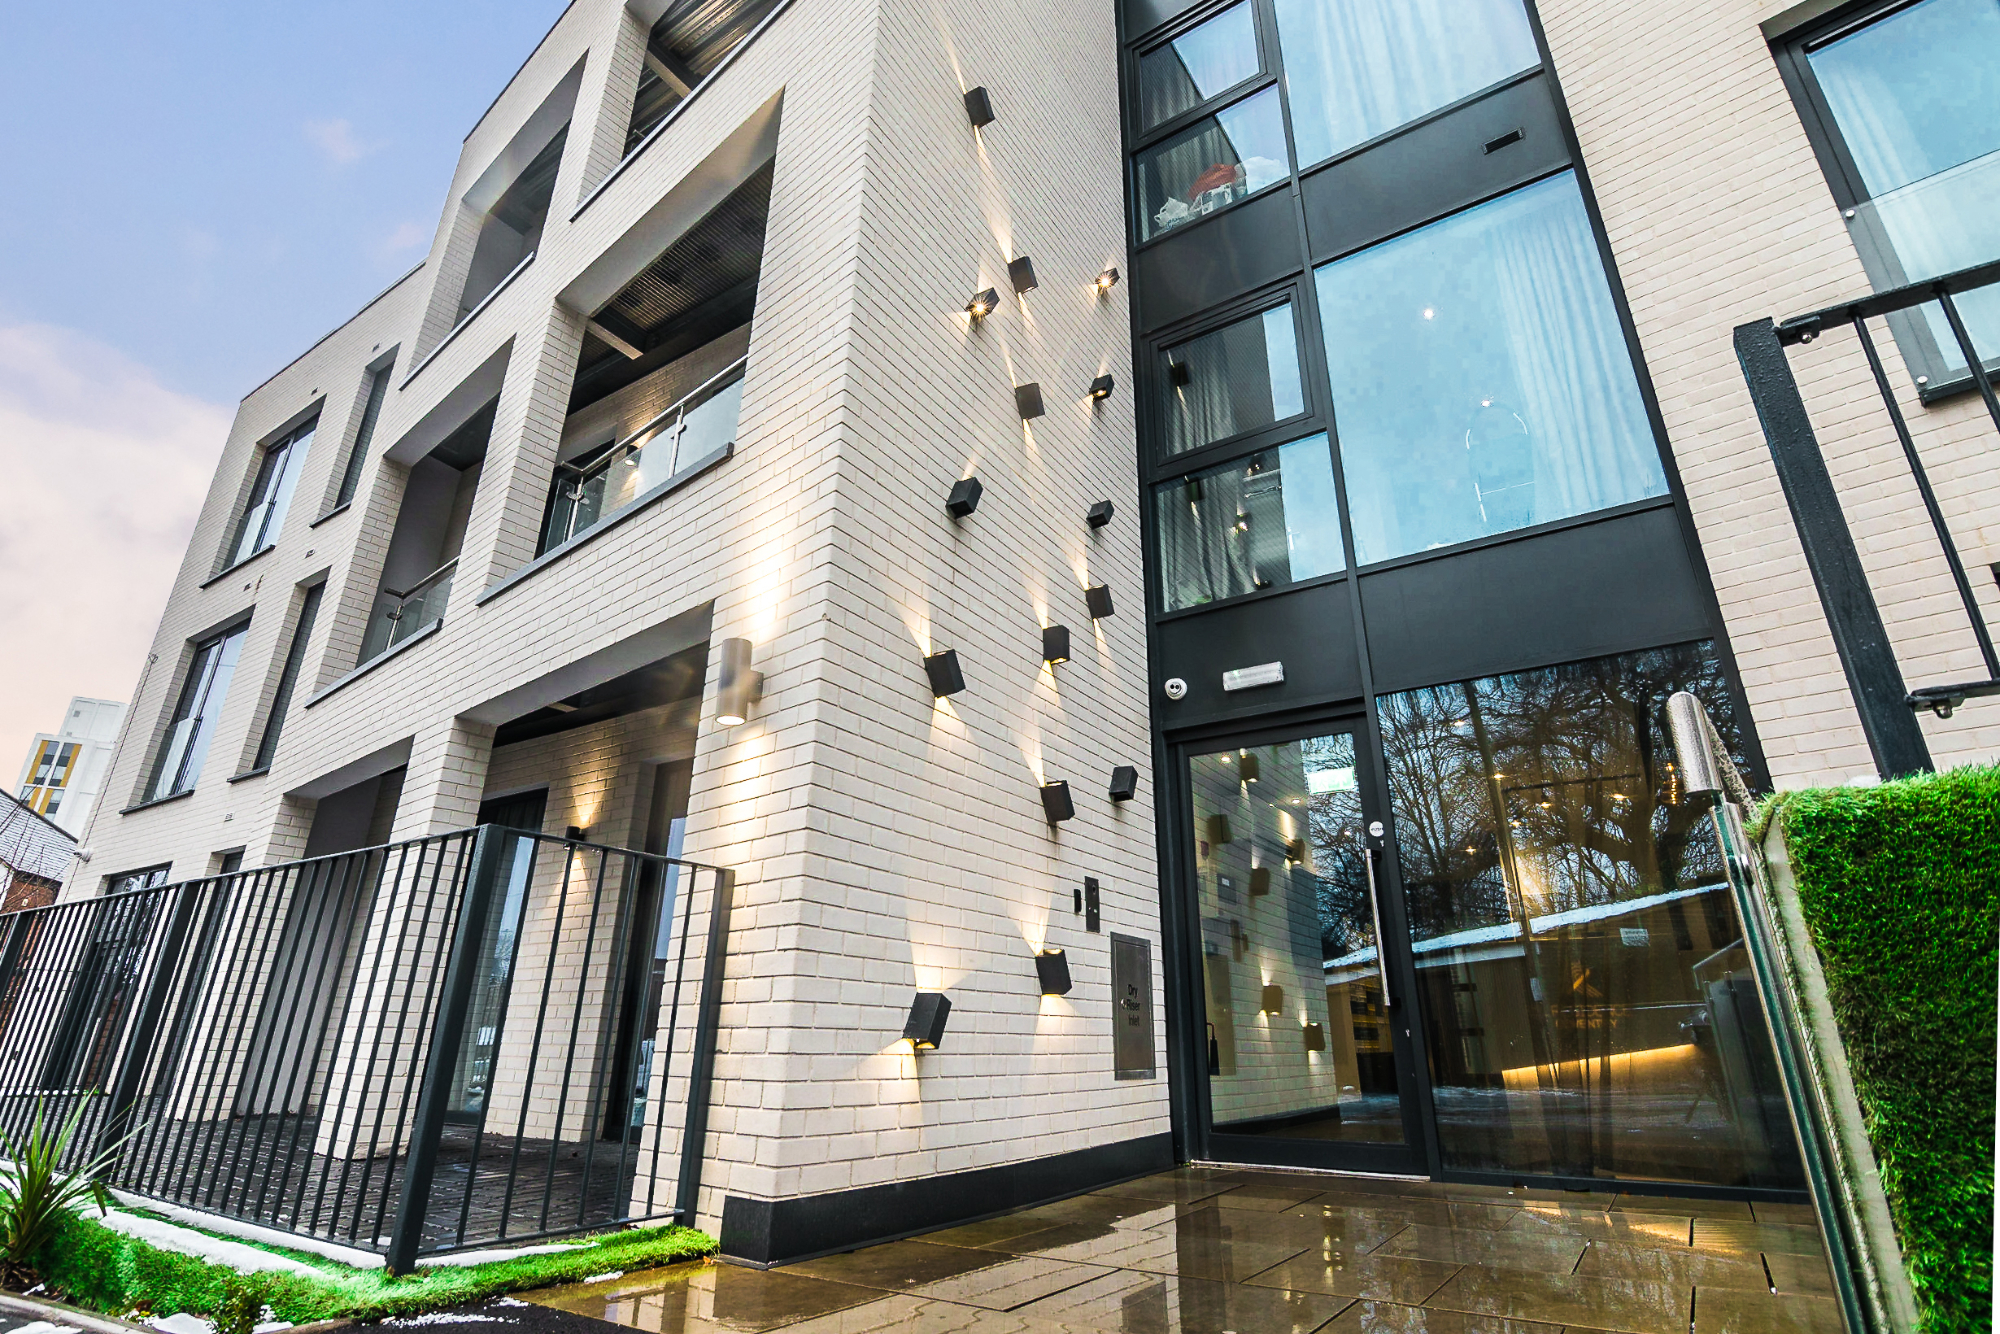 The Residence student accommodation coventry exterior